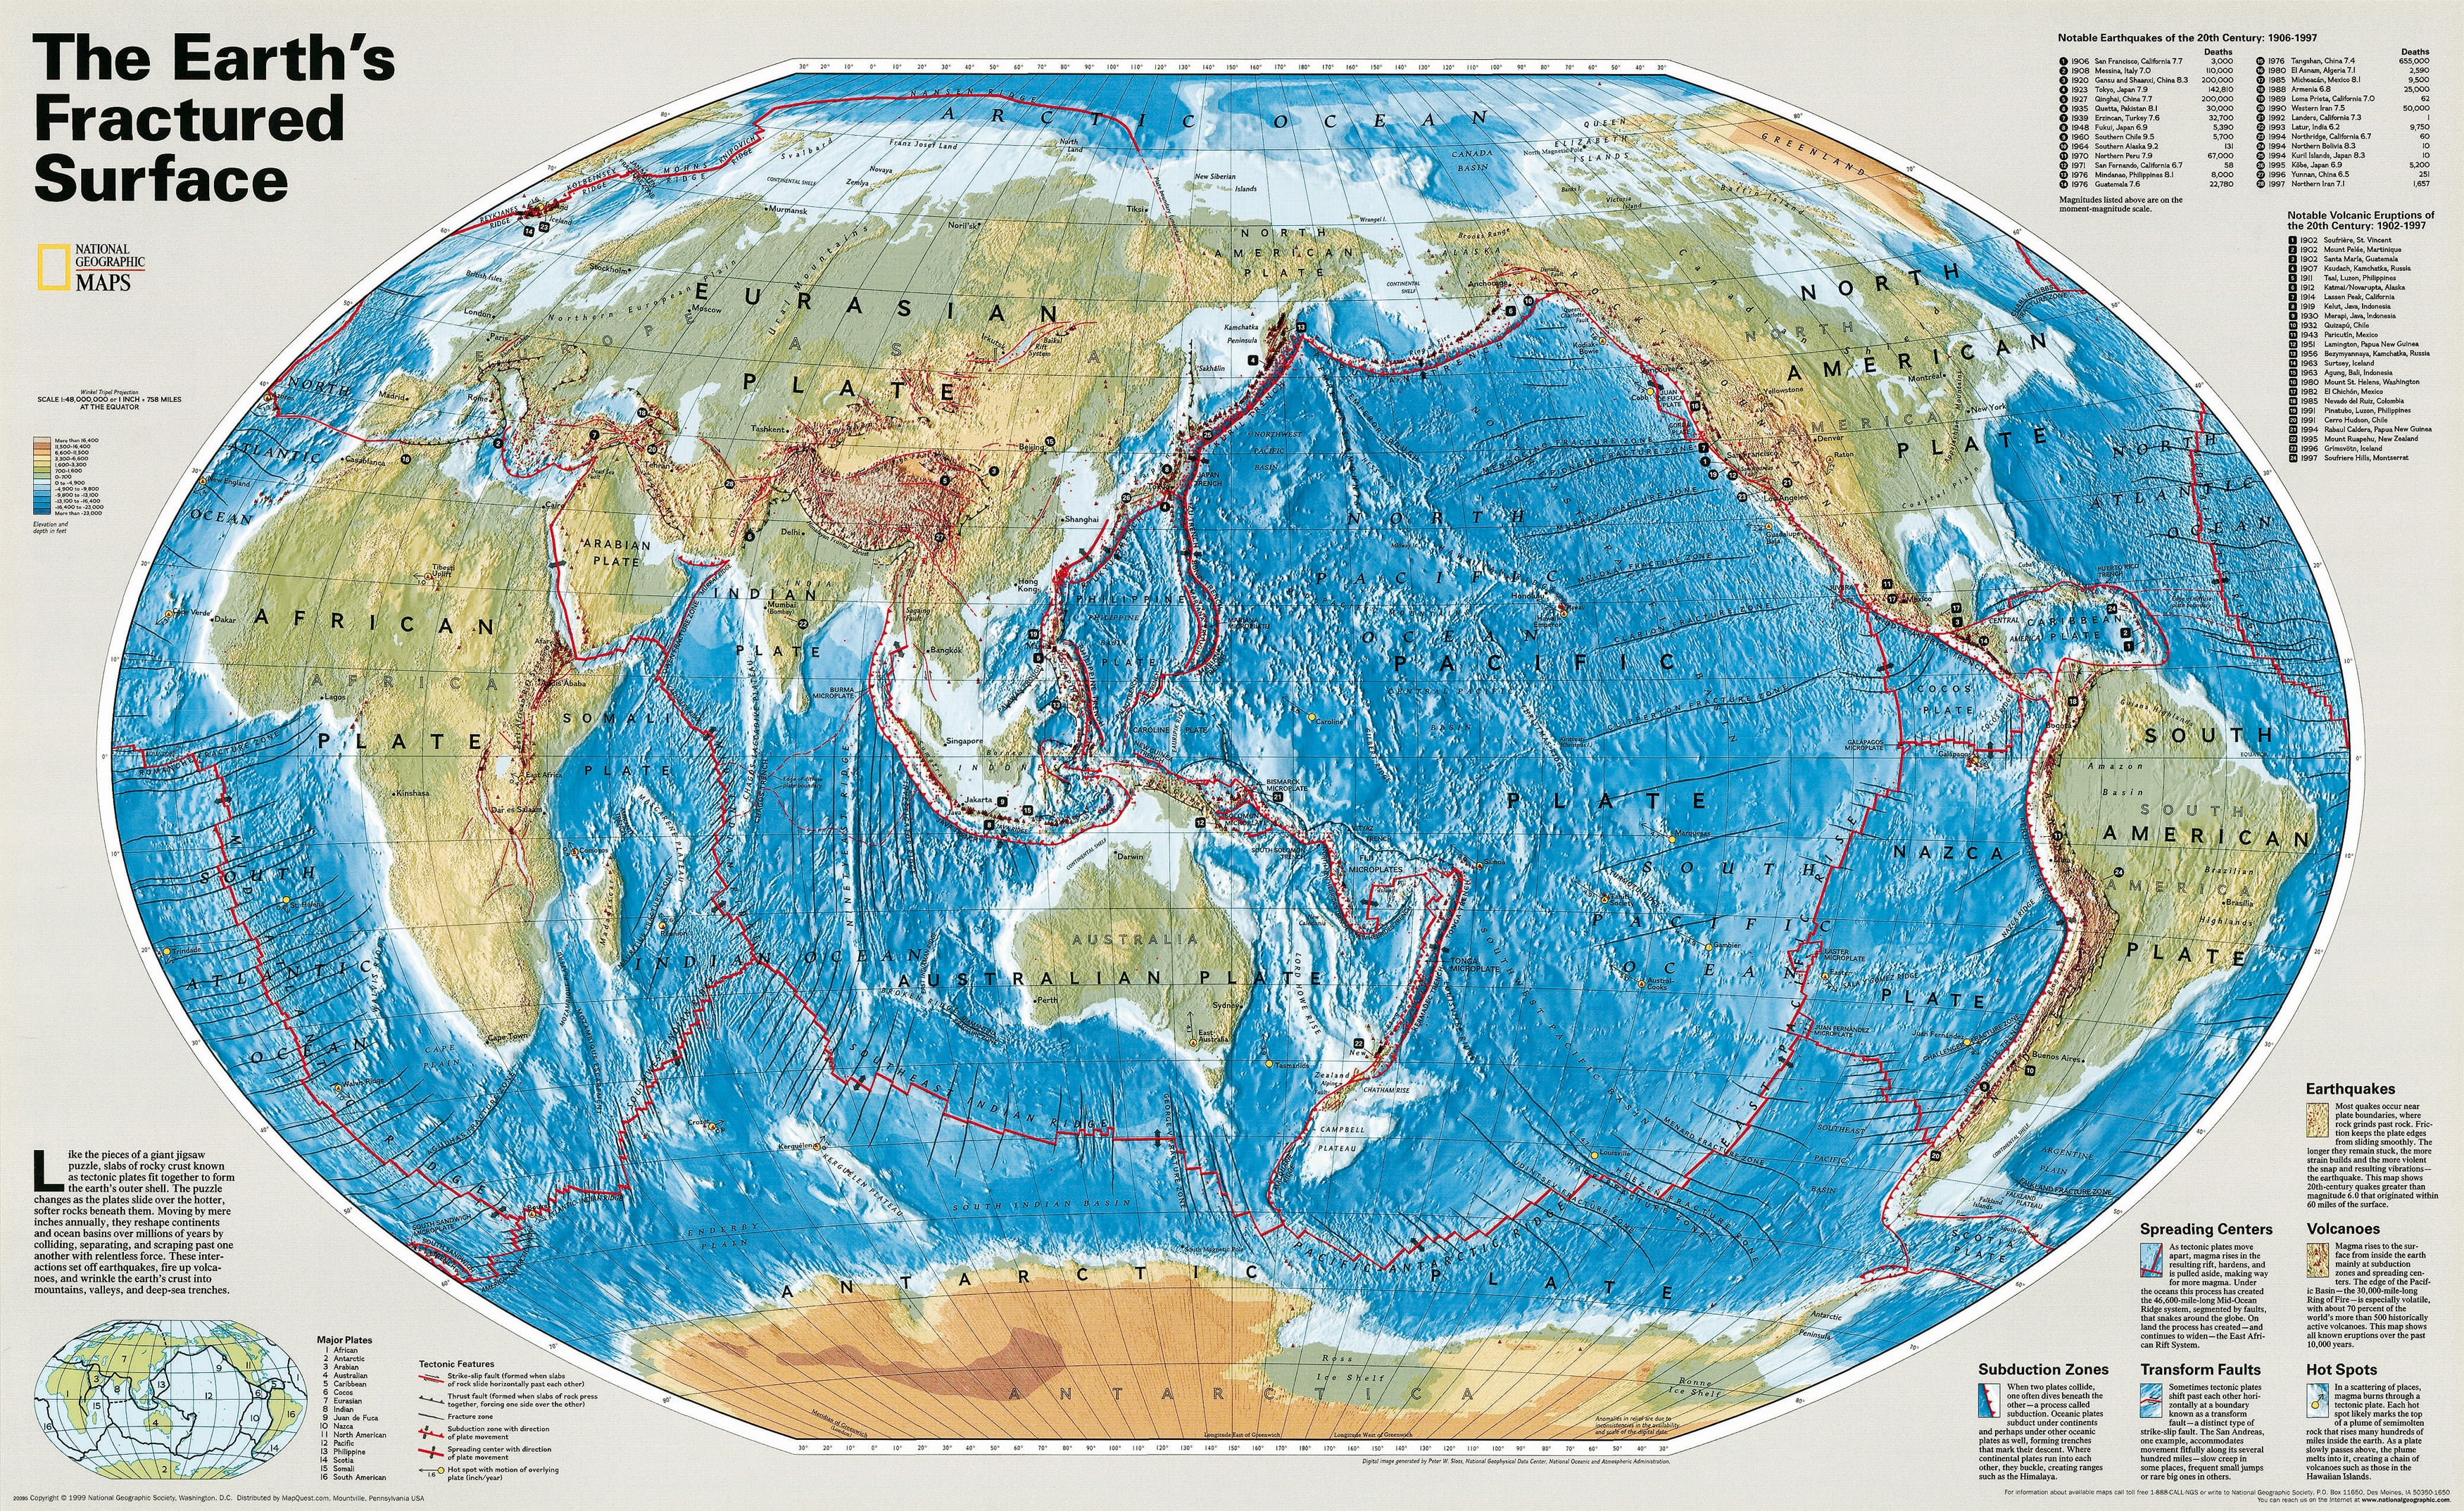 Authentic World Map.The Earths Fractured Surface World Maps National Geographic Maps